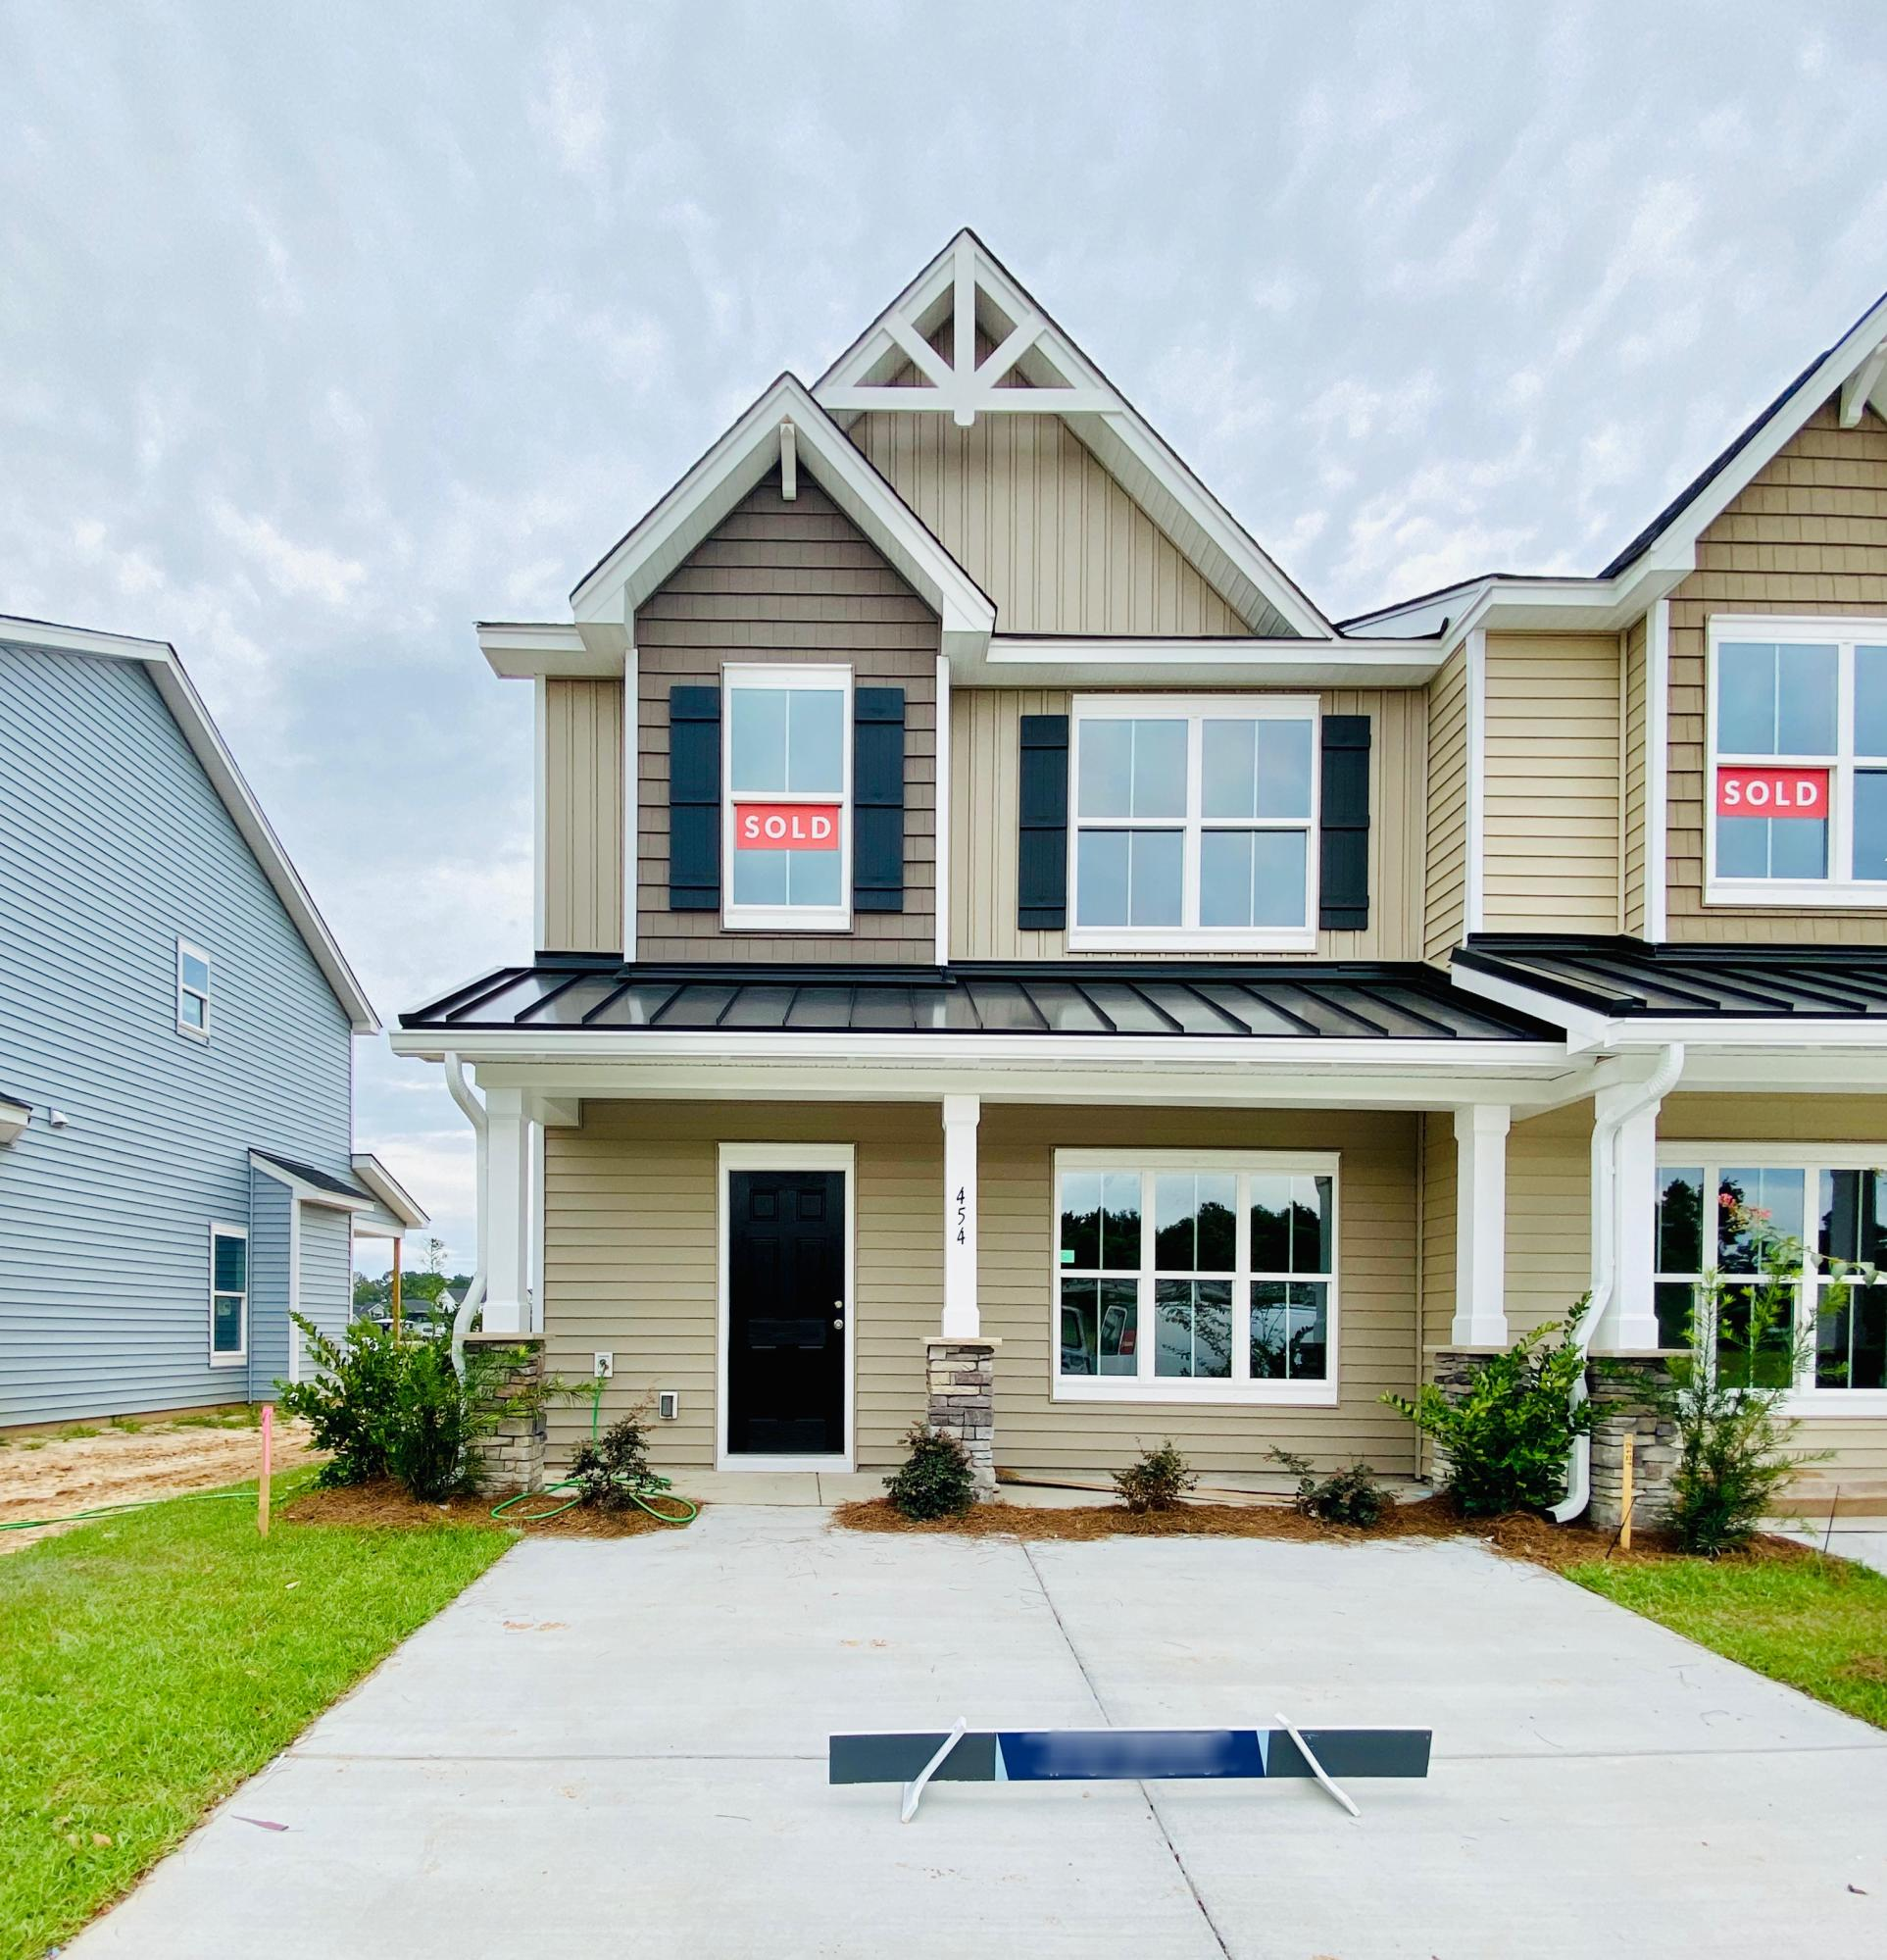 454 Viceroy Lane Goose Creek, Sc 29445